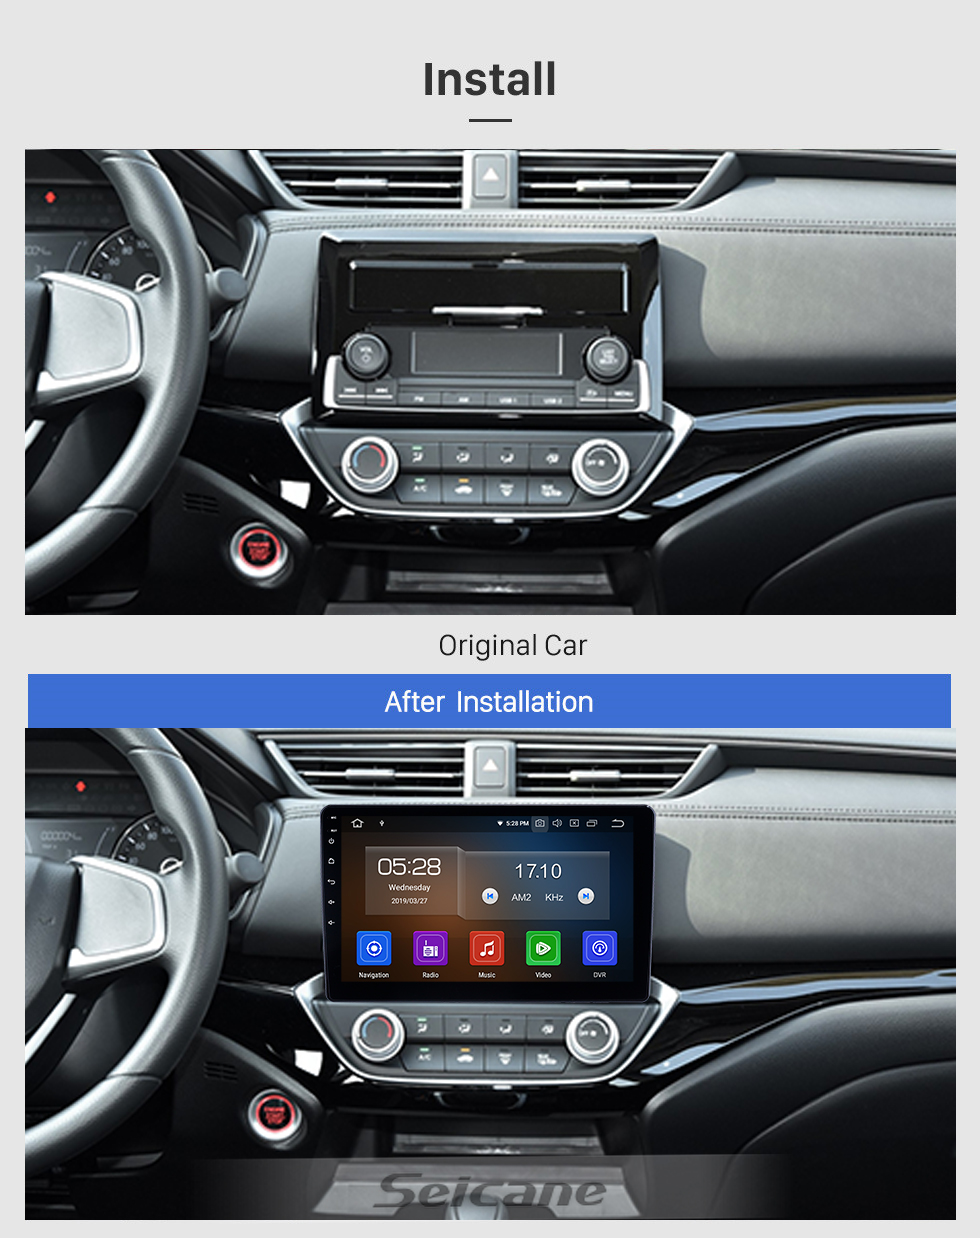 Seicane 10.1 inch Android 10.0 Radio for 2018-2019 Honda Crider Bluetooth HD Touchscreen GPS Navigation Carplay USB support TPMS Backup camera DAB+